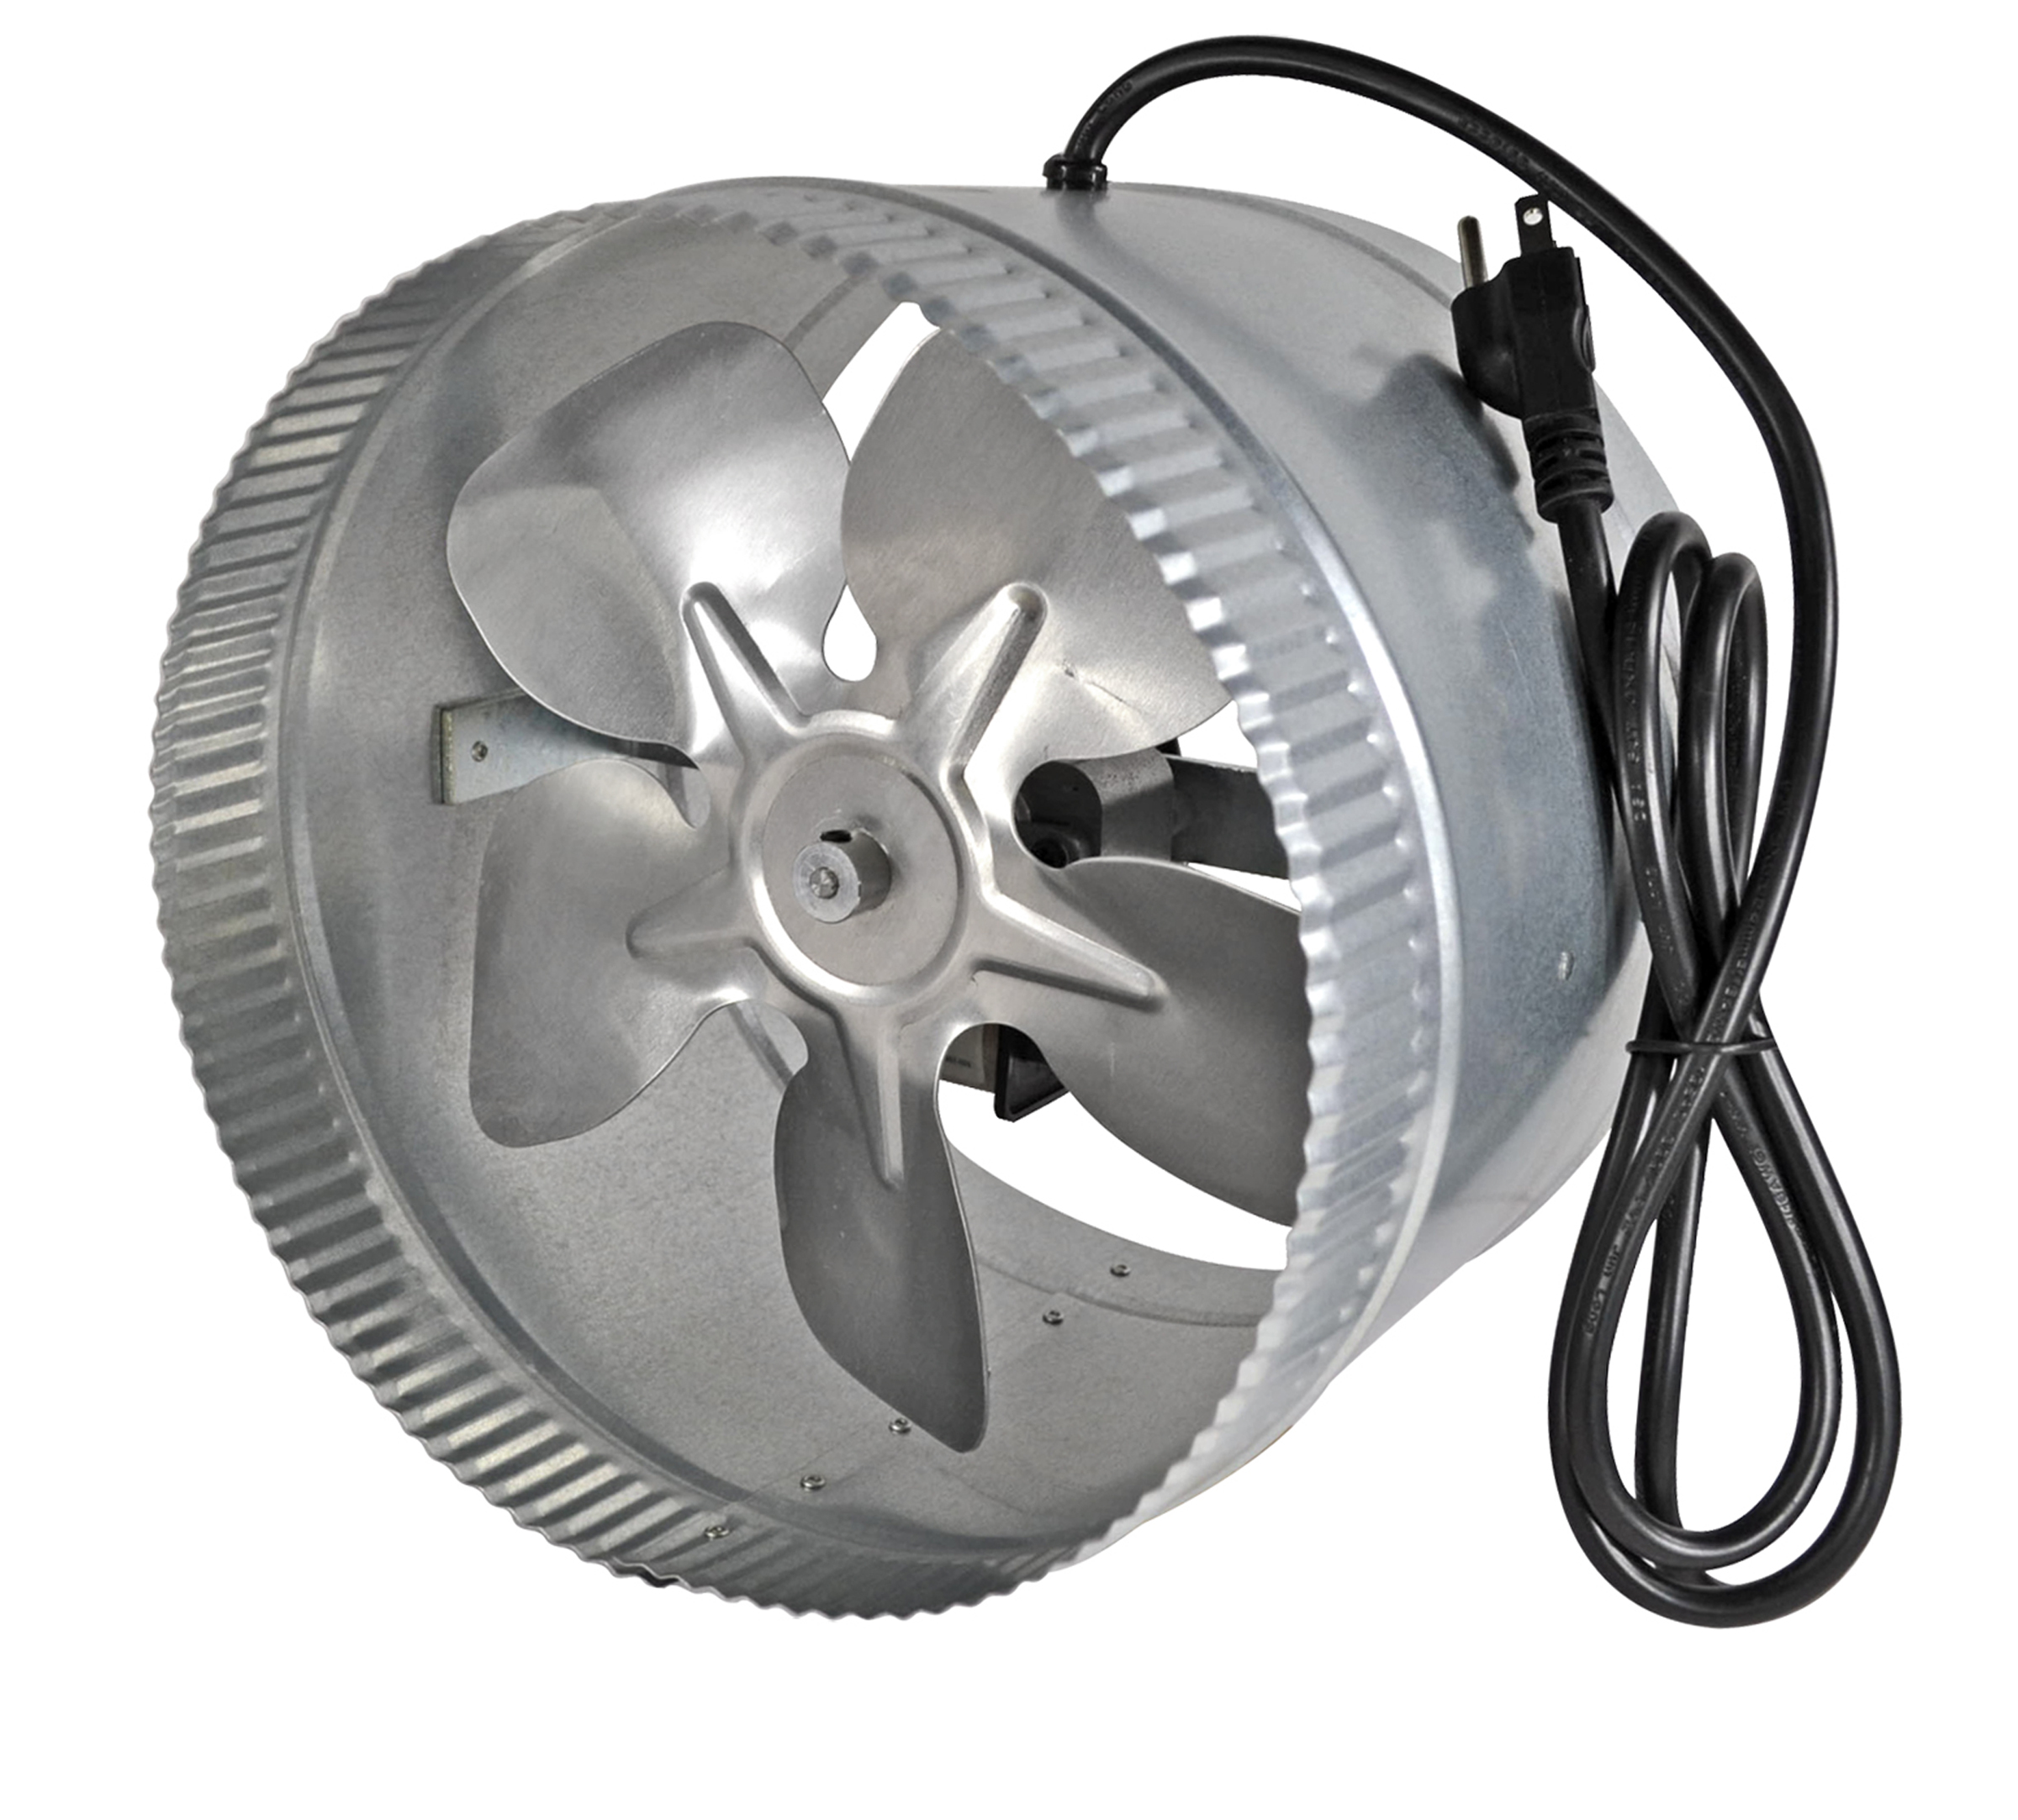 Suncourt Home Fan As Well 220v Motor Wiring Diagram On Table Ac Inductor Corded In Line Duct